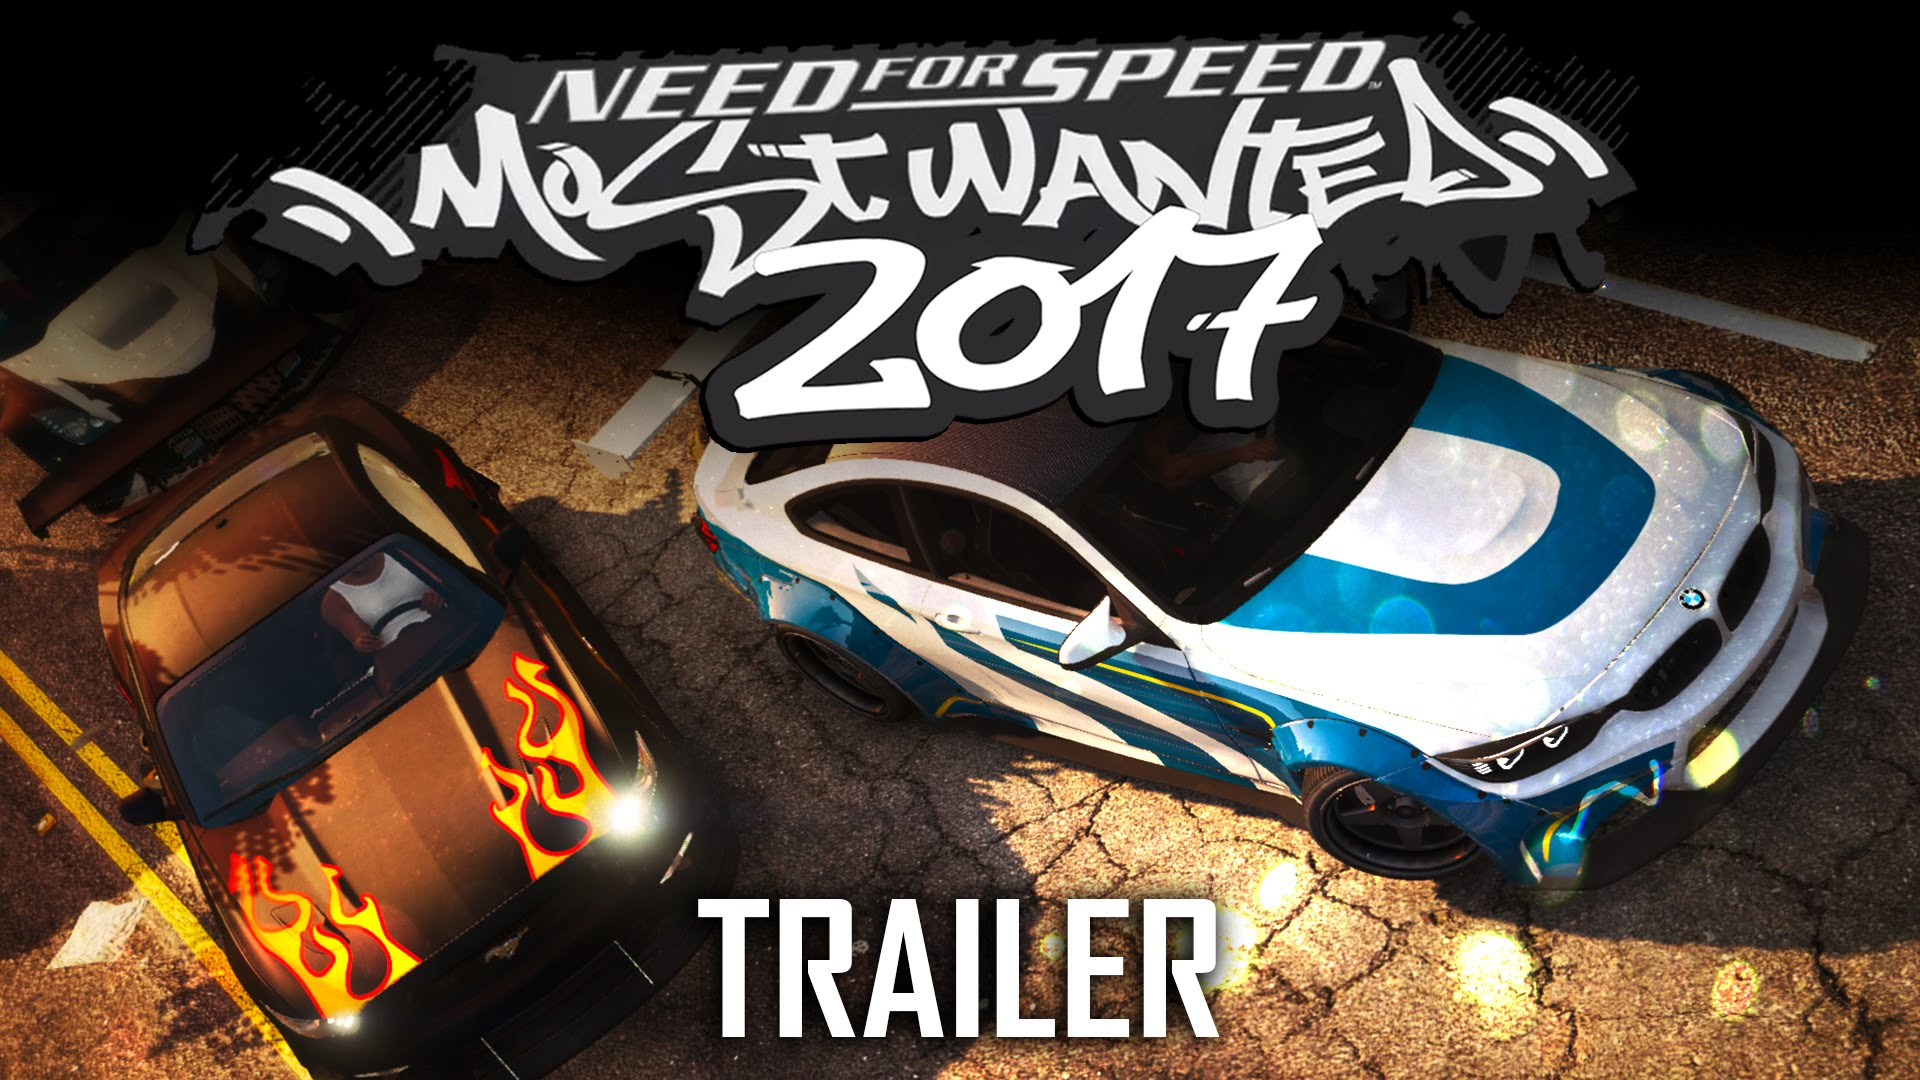 Skachat Need For Speed Most Wanted 2012 Na Xbox 360 Prakard